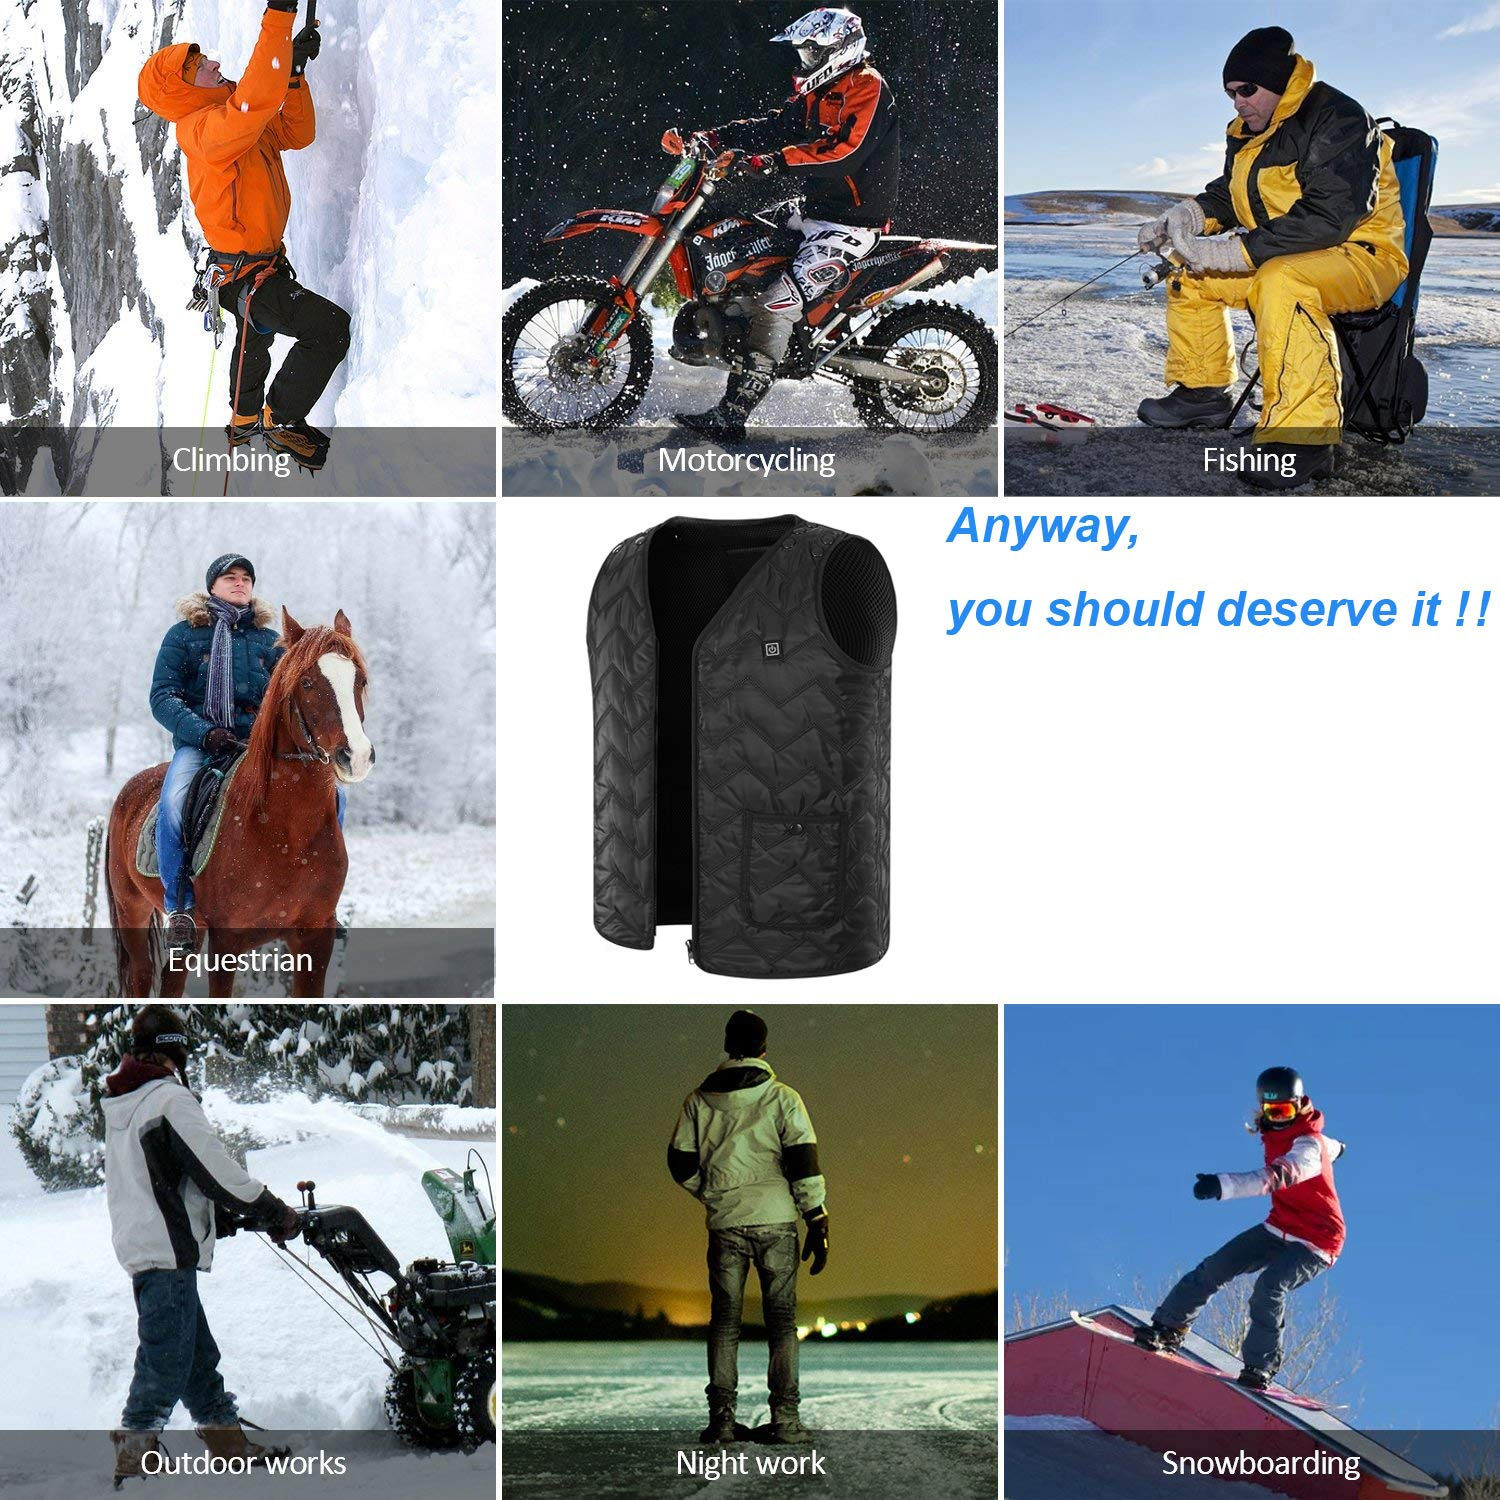 Dolecci Heated Vest Size Adjustable Electric Warm Winter Vest 5V USB Heating Clothing Lightweight Insulated Heated Waistcoat for Outdoor Hiking Black